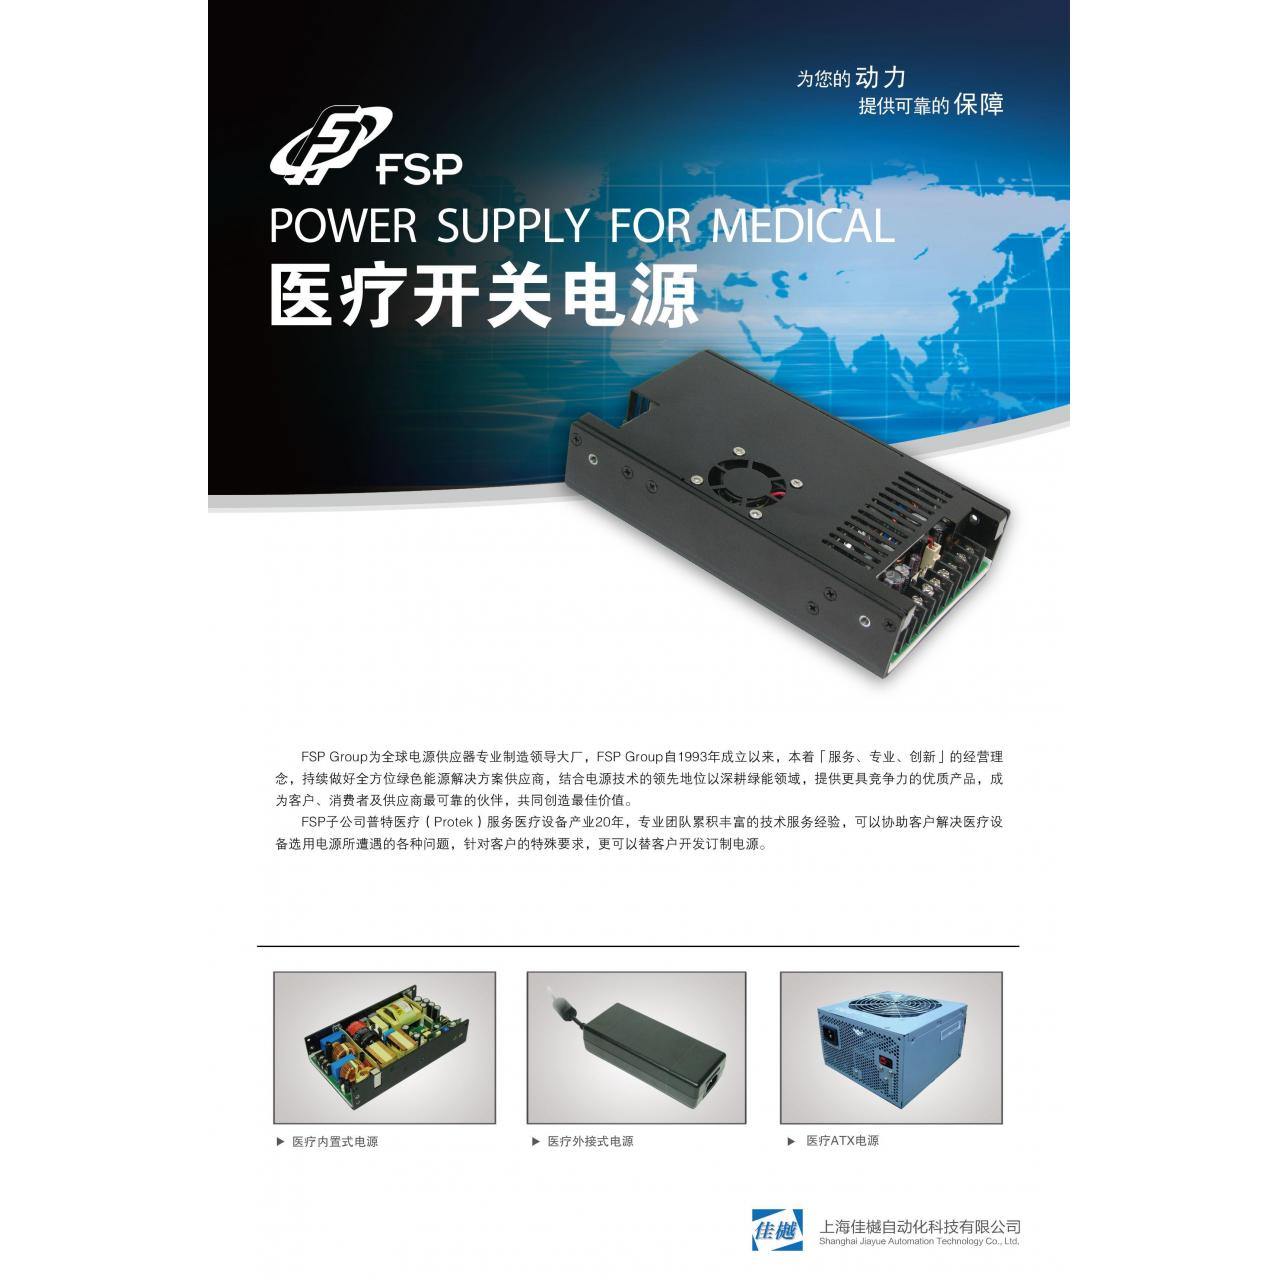 FSP Power Supply for Medical FSP Power Supply for Medical